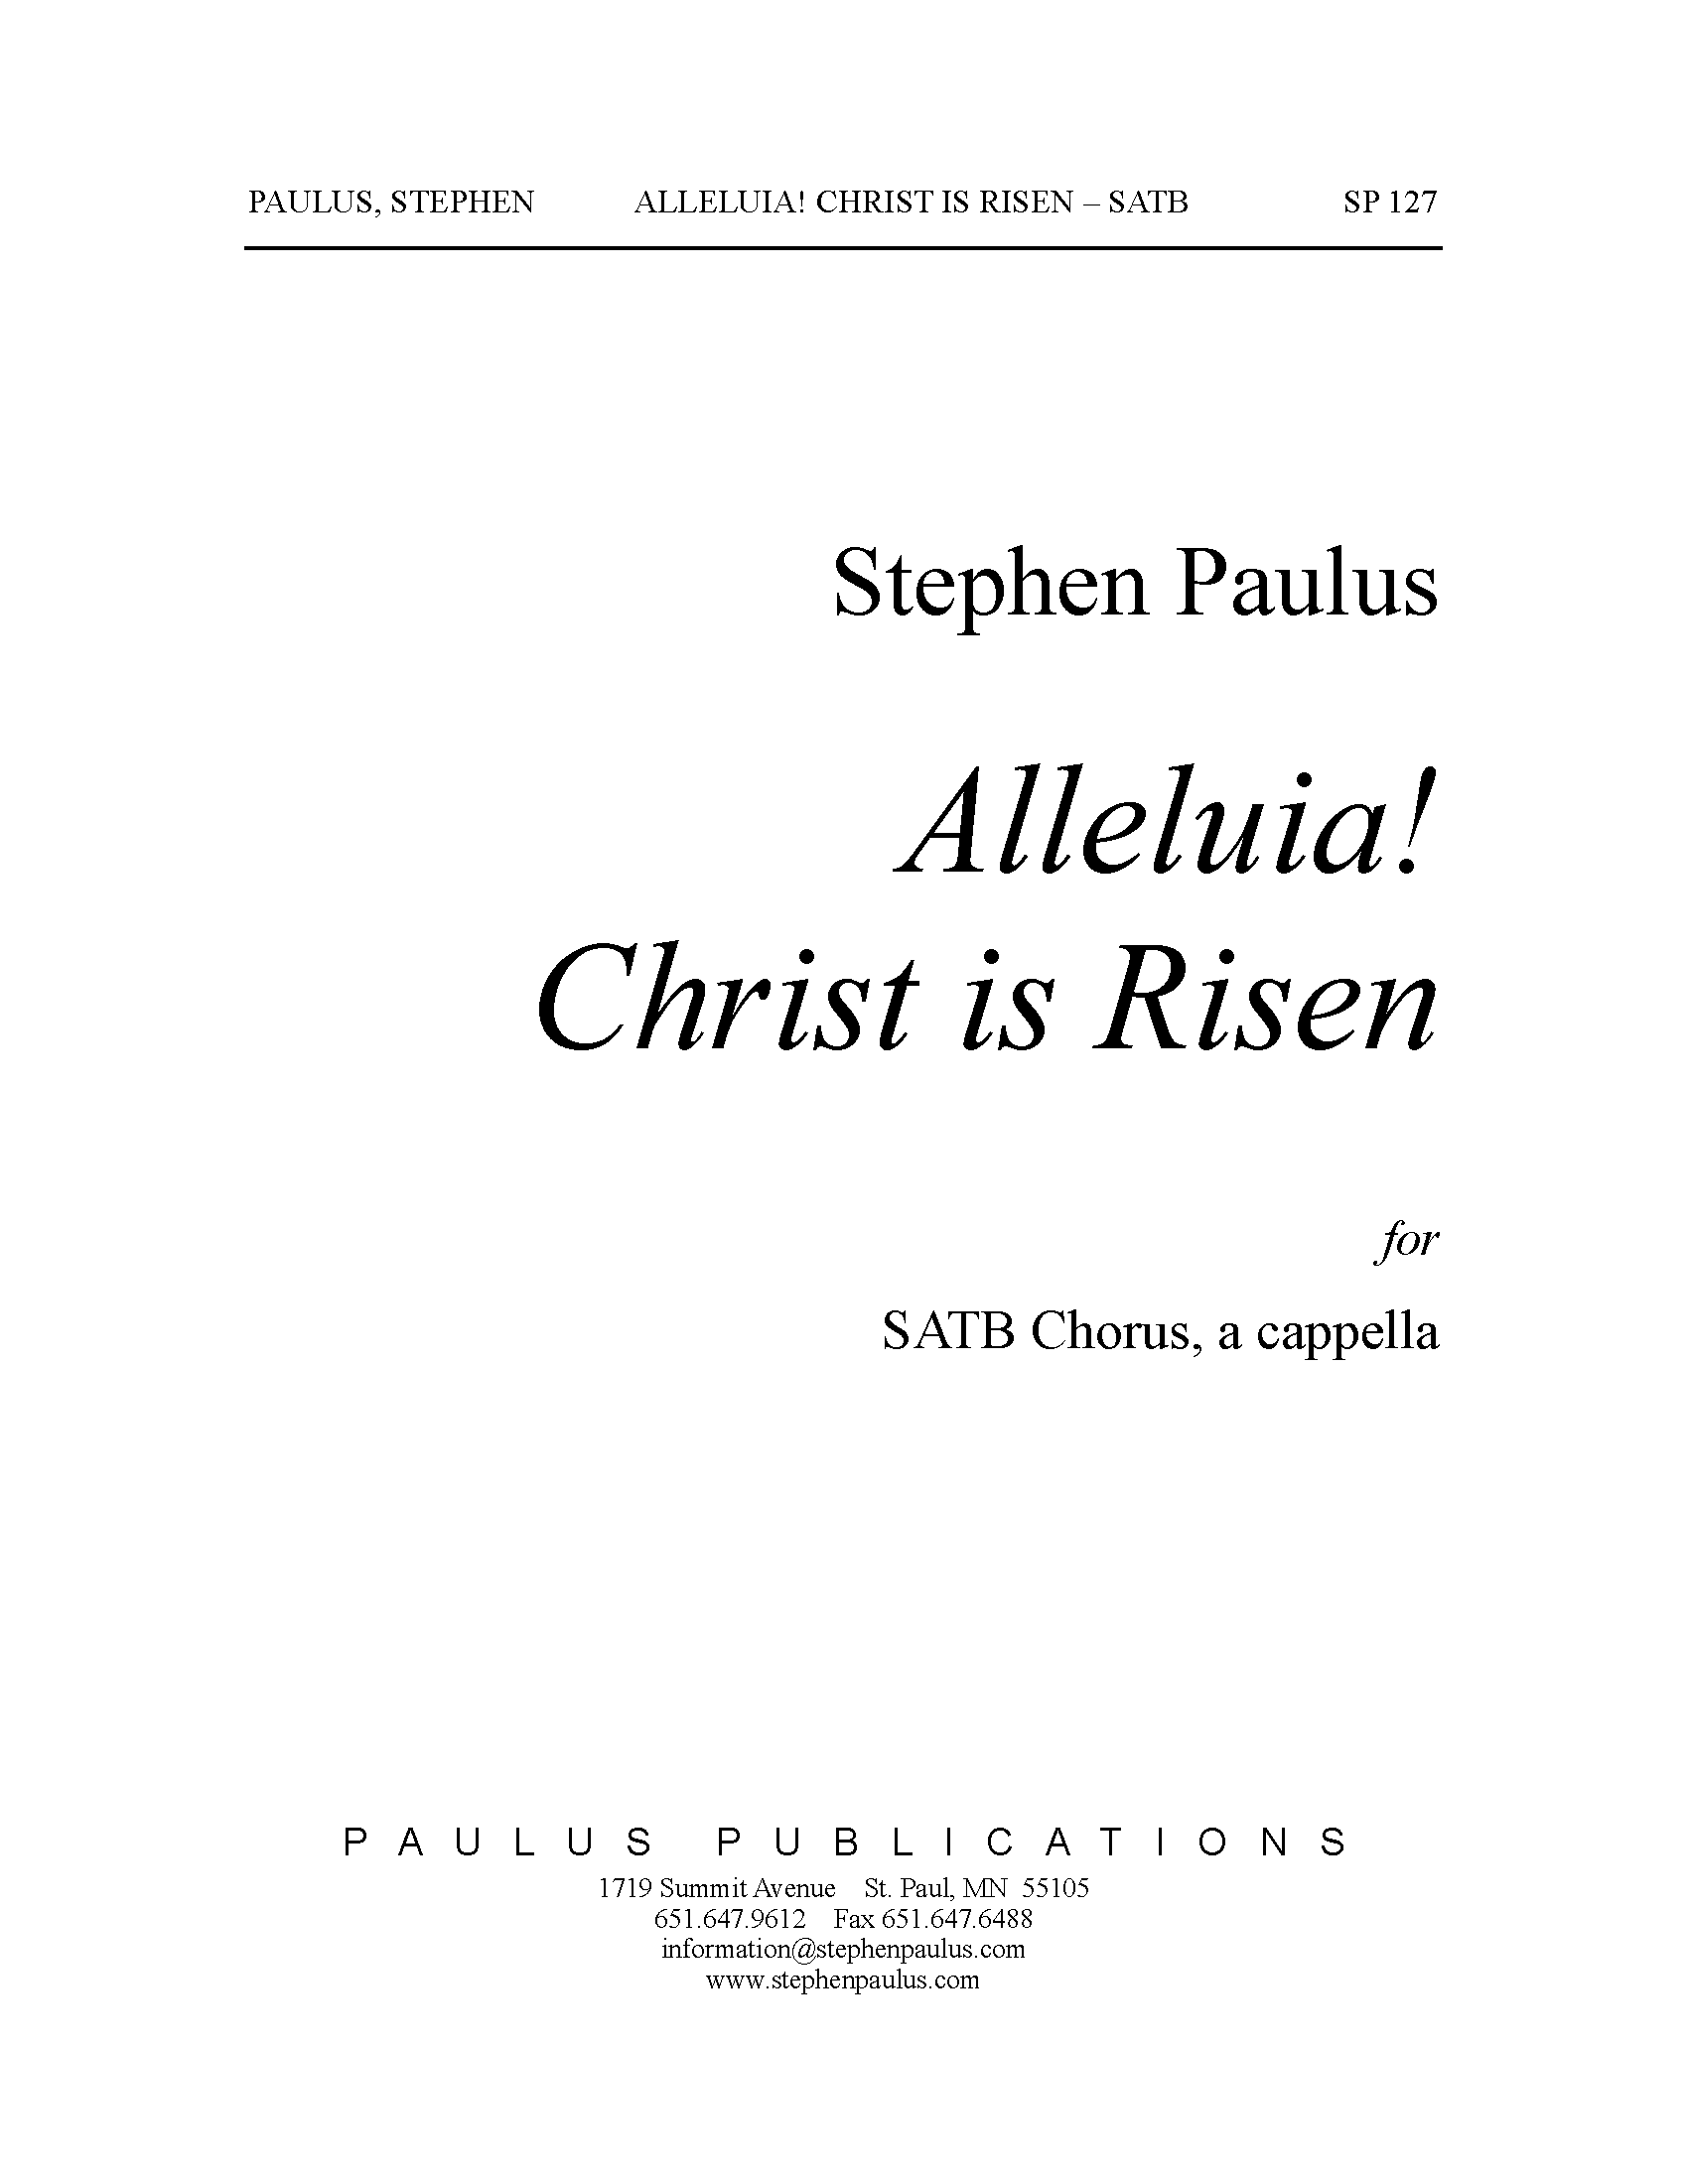 Alleluia! Christ is Risen for SATB Chorus, a cappella